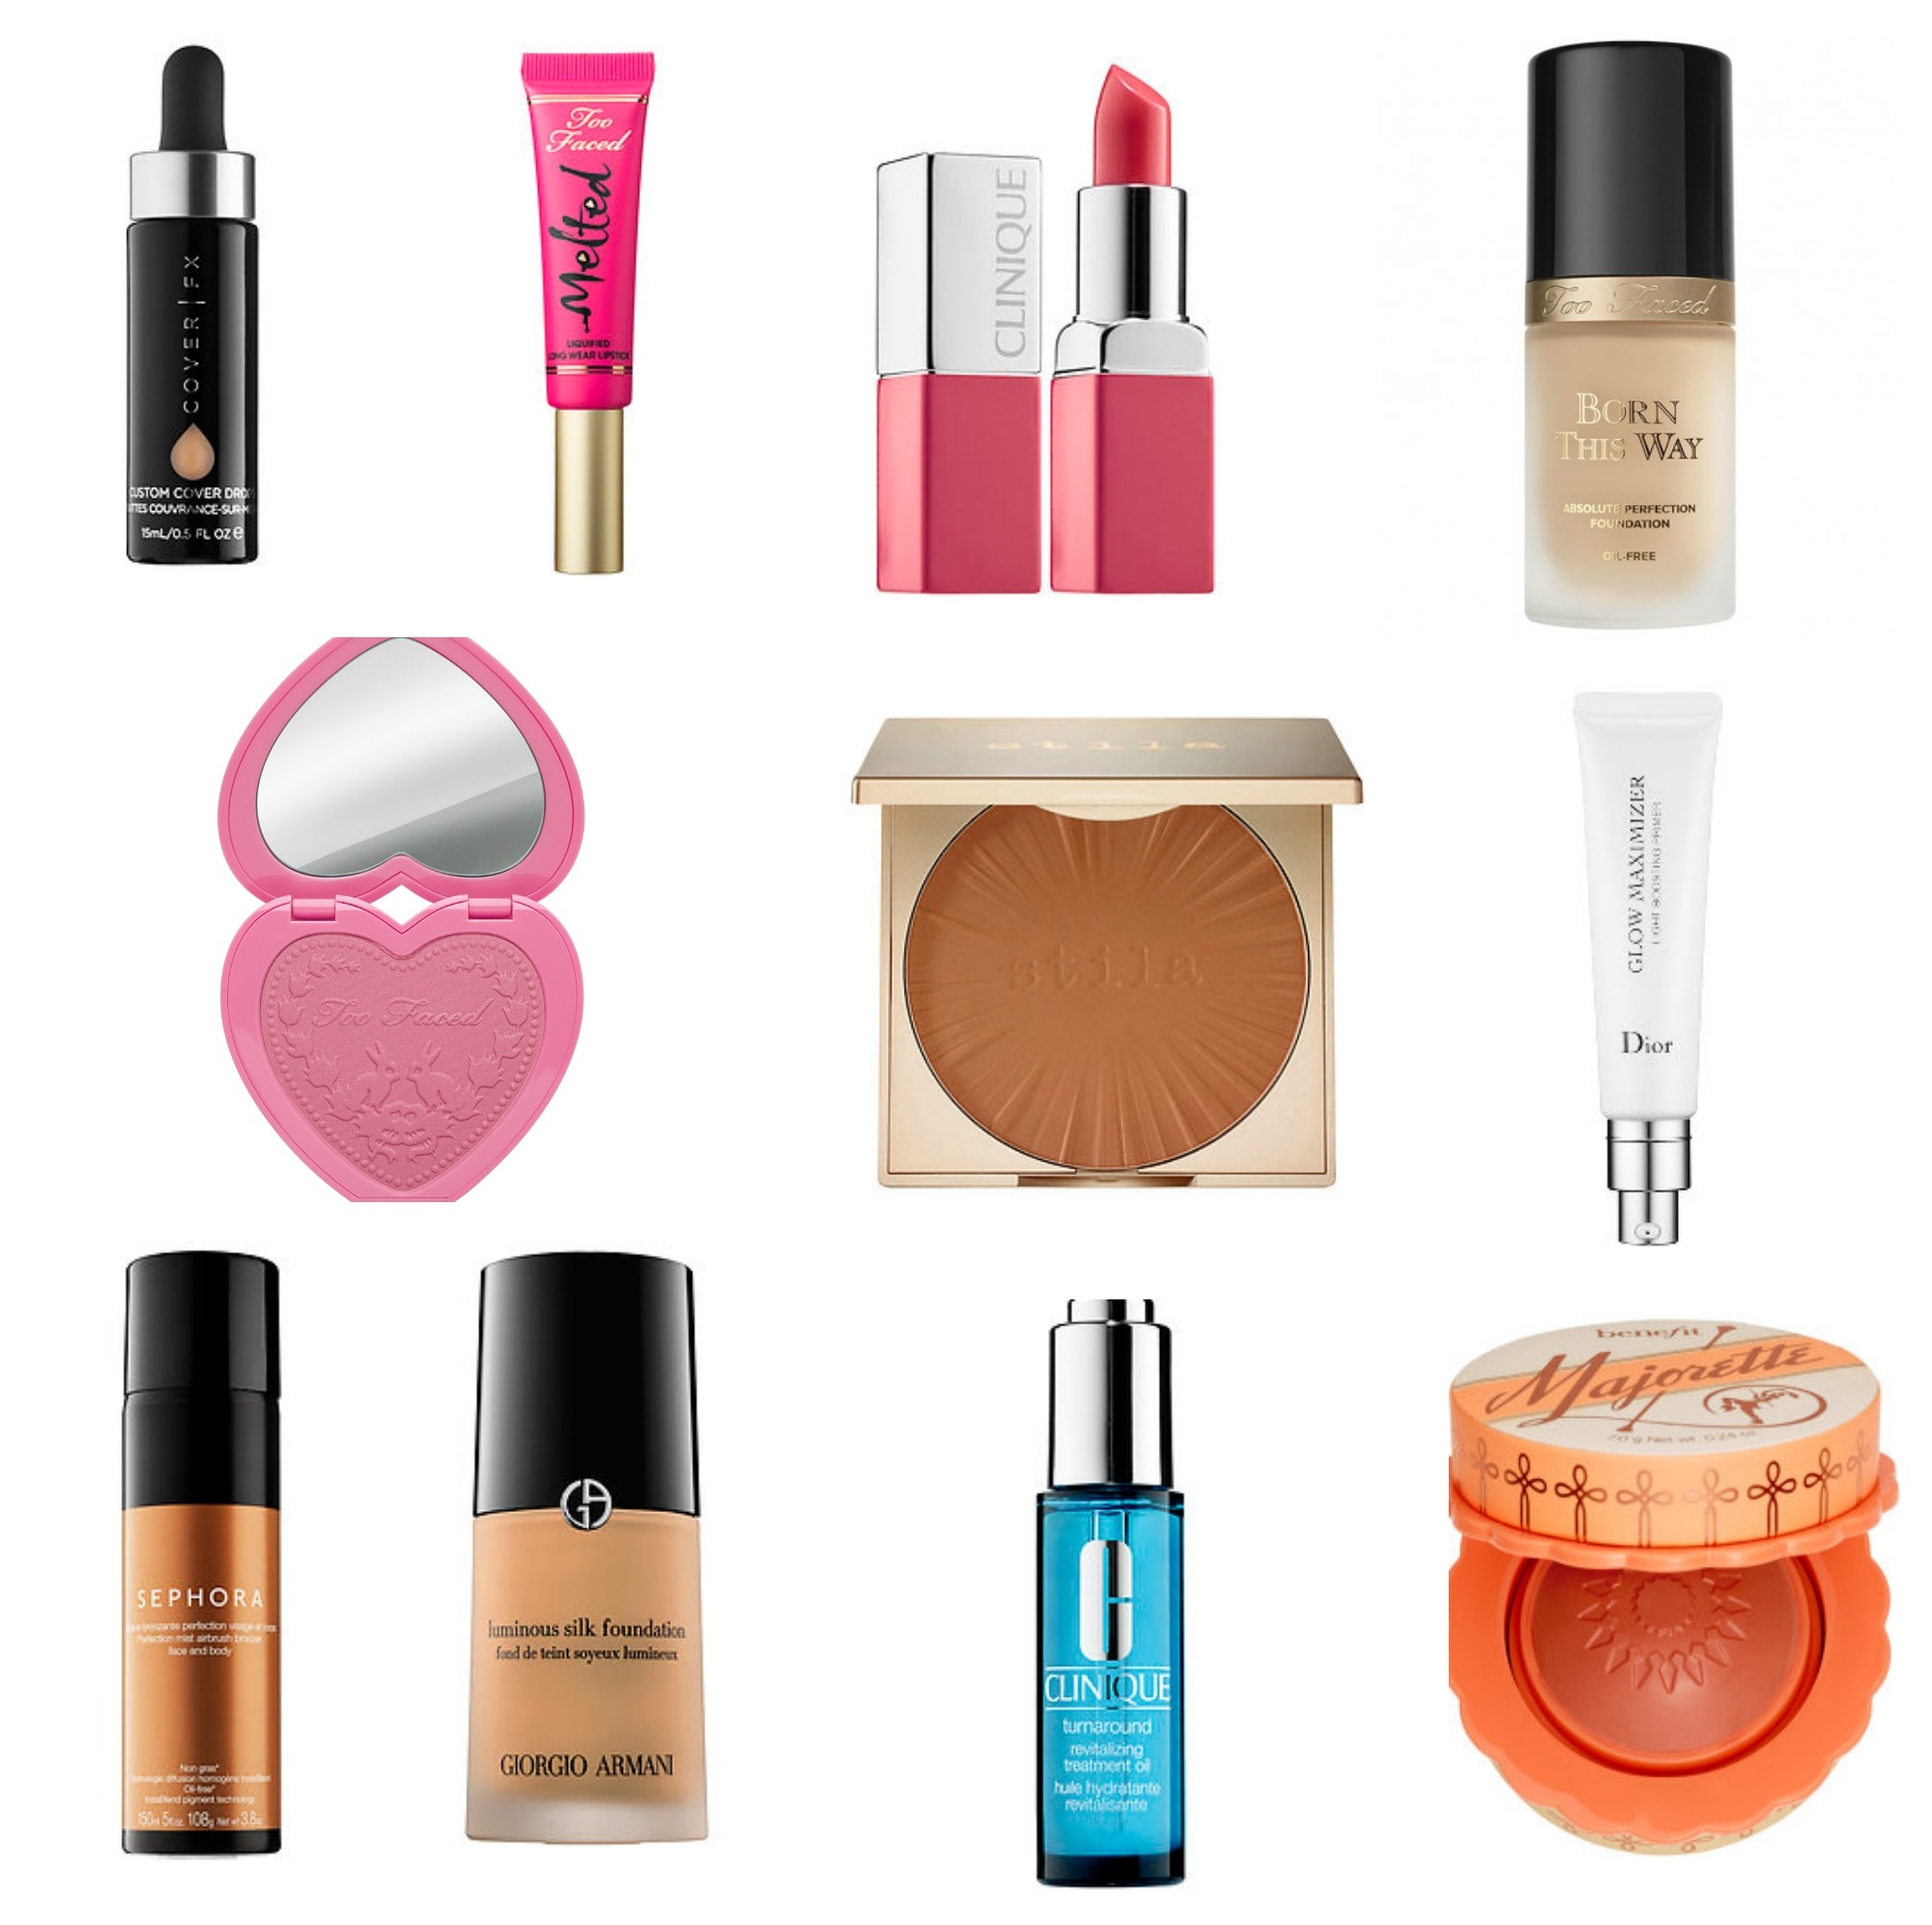 product wishlist june 2015